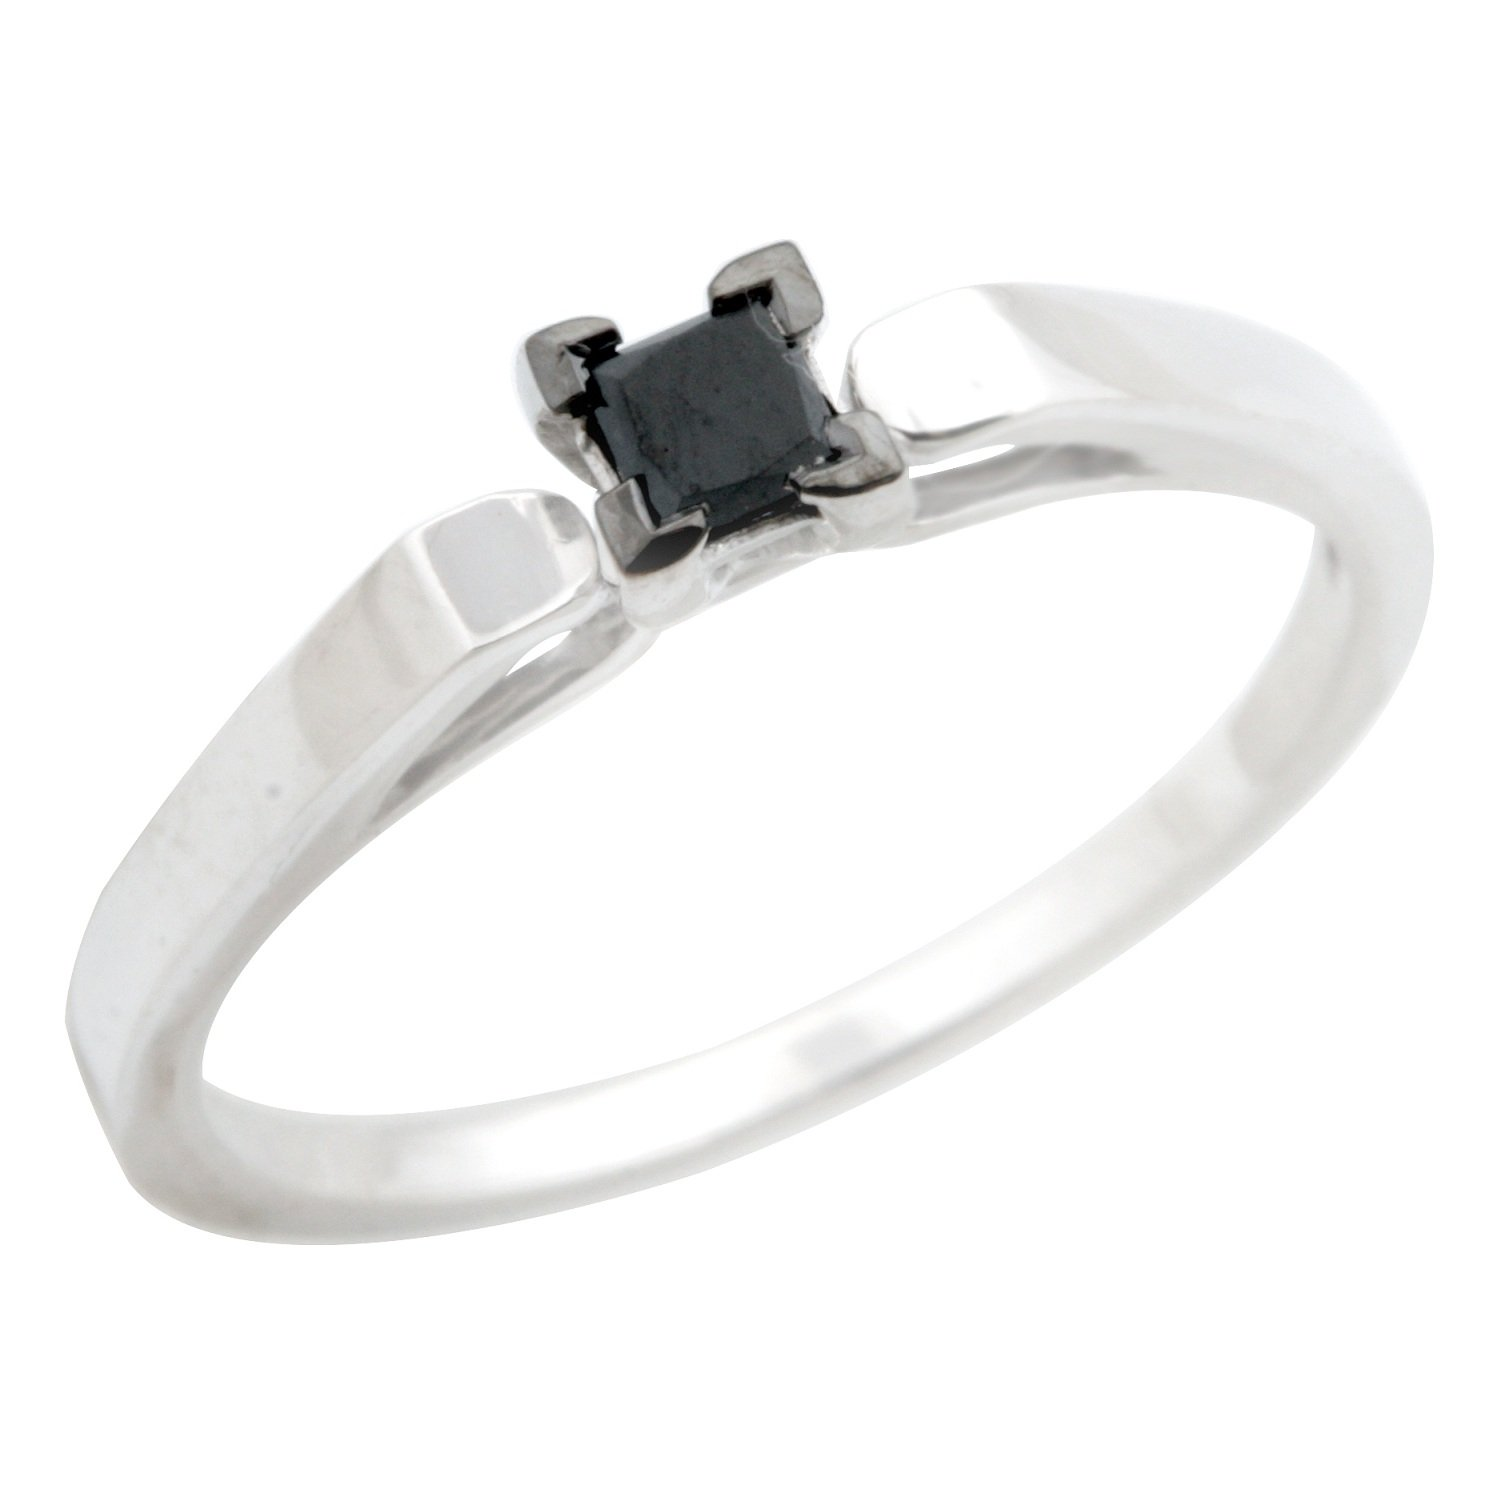 Prism Jewel Princess Black Diamond Solitaire Engagement Ring 925 Sterling Silver